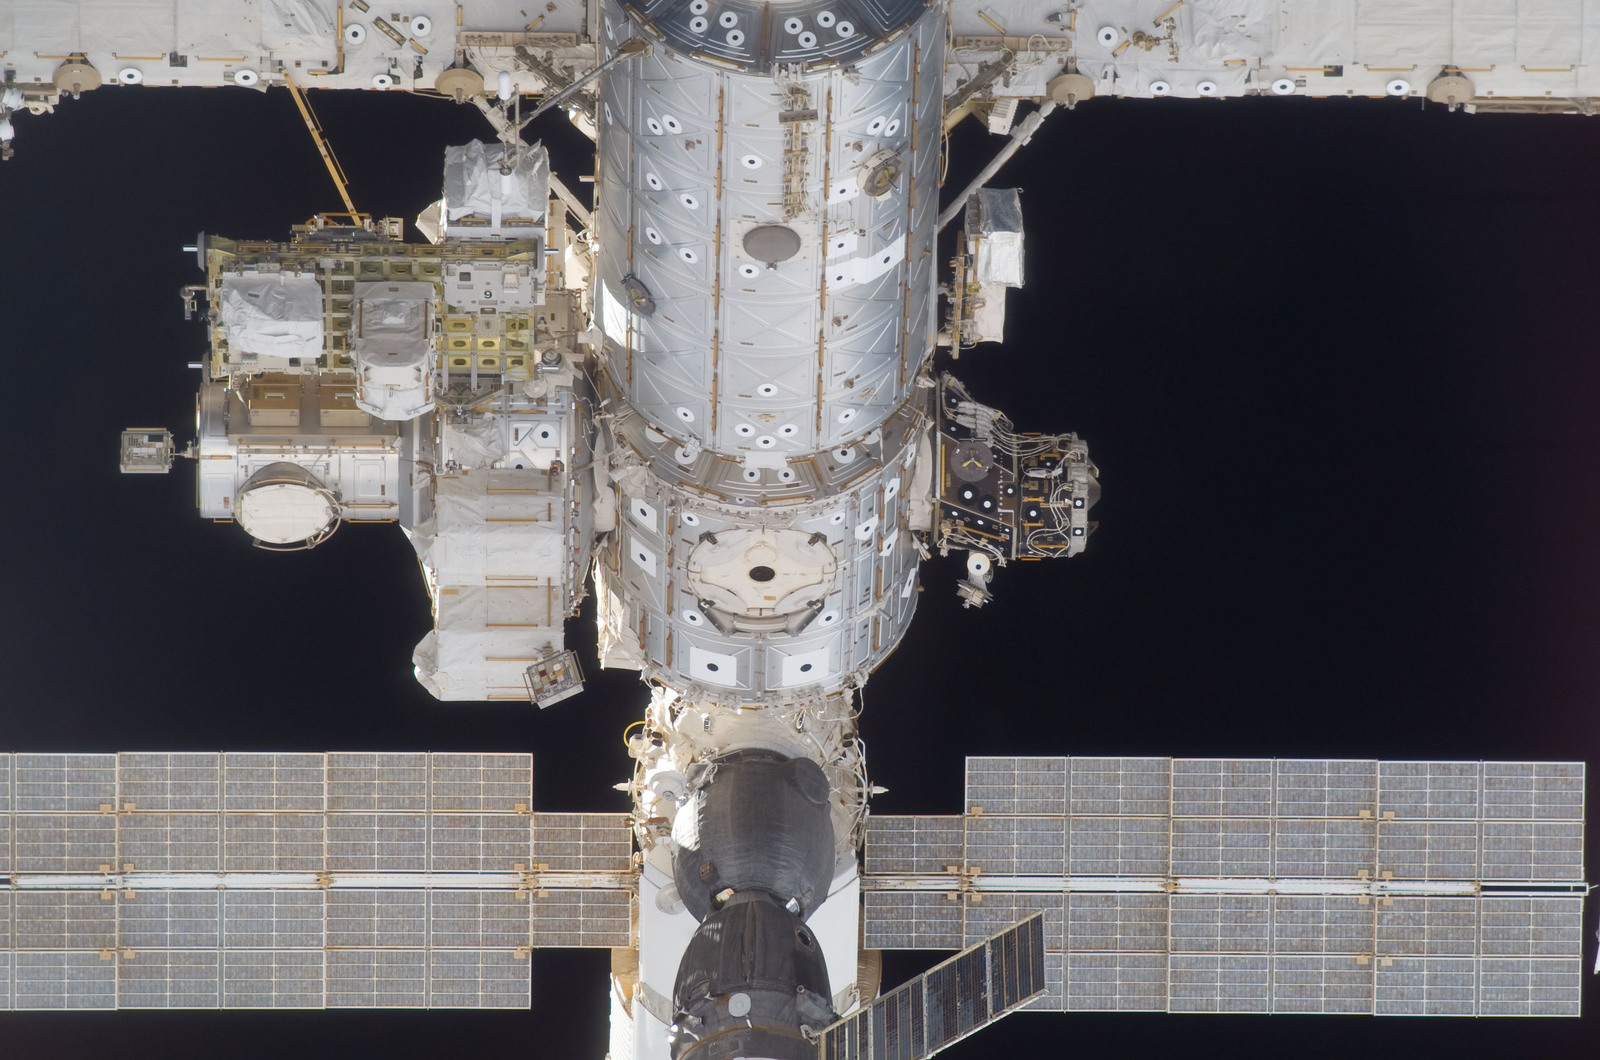 S115E05410 - STS-115 - ISS during approach of the STS-115 Space Shuttle Atlantis